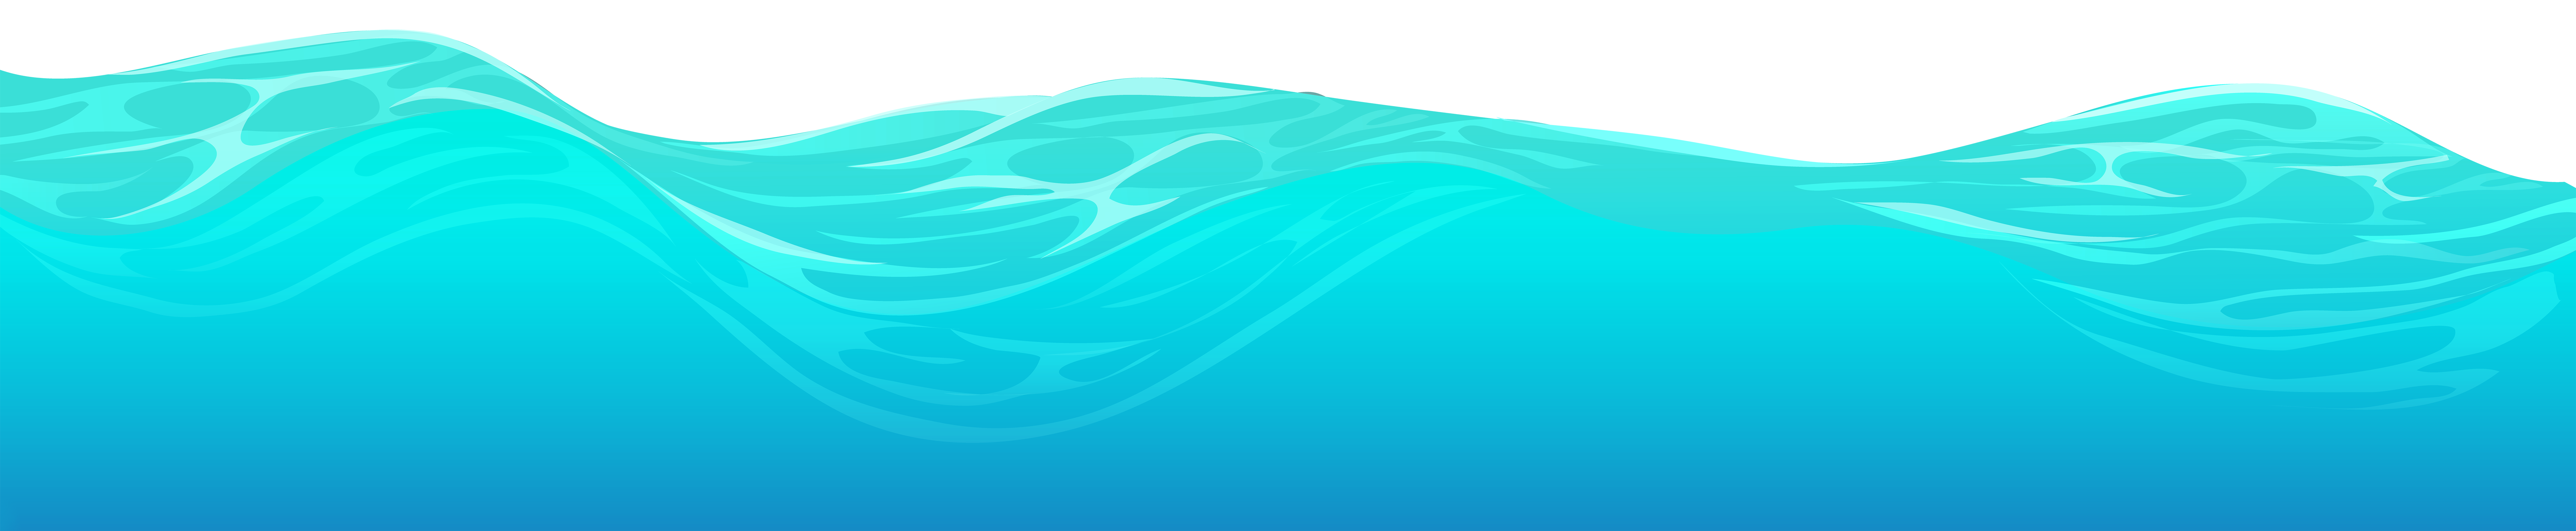 Sea group ground png. Ocean clipart open ocean